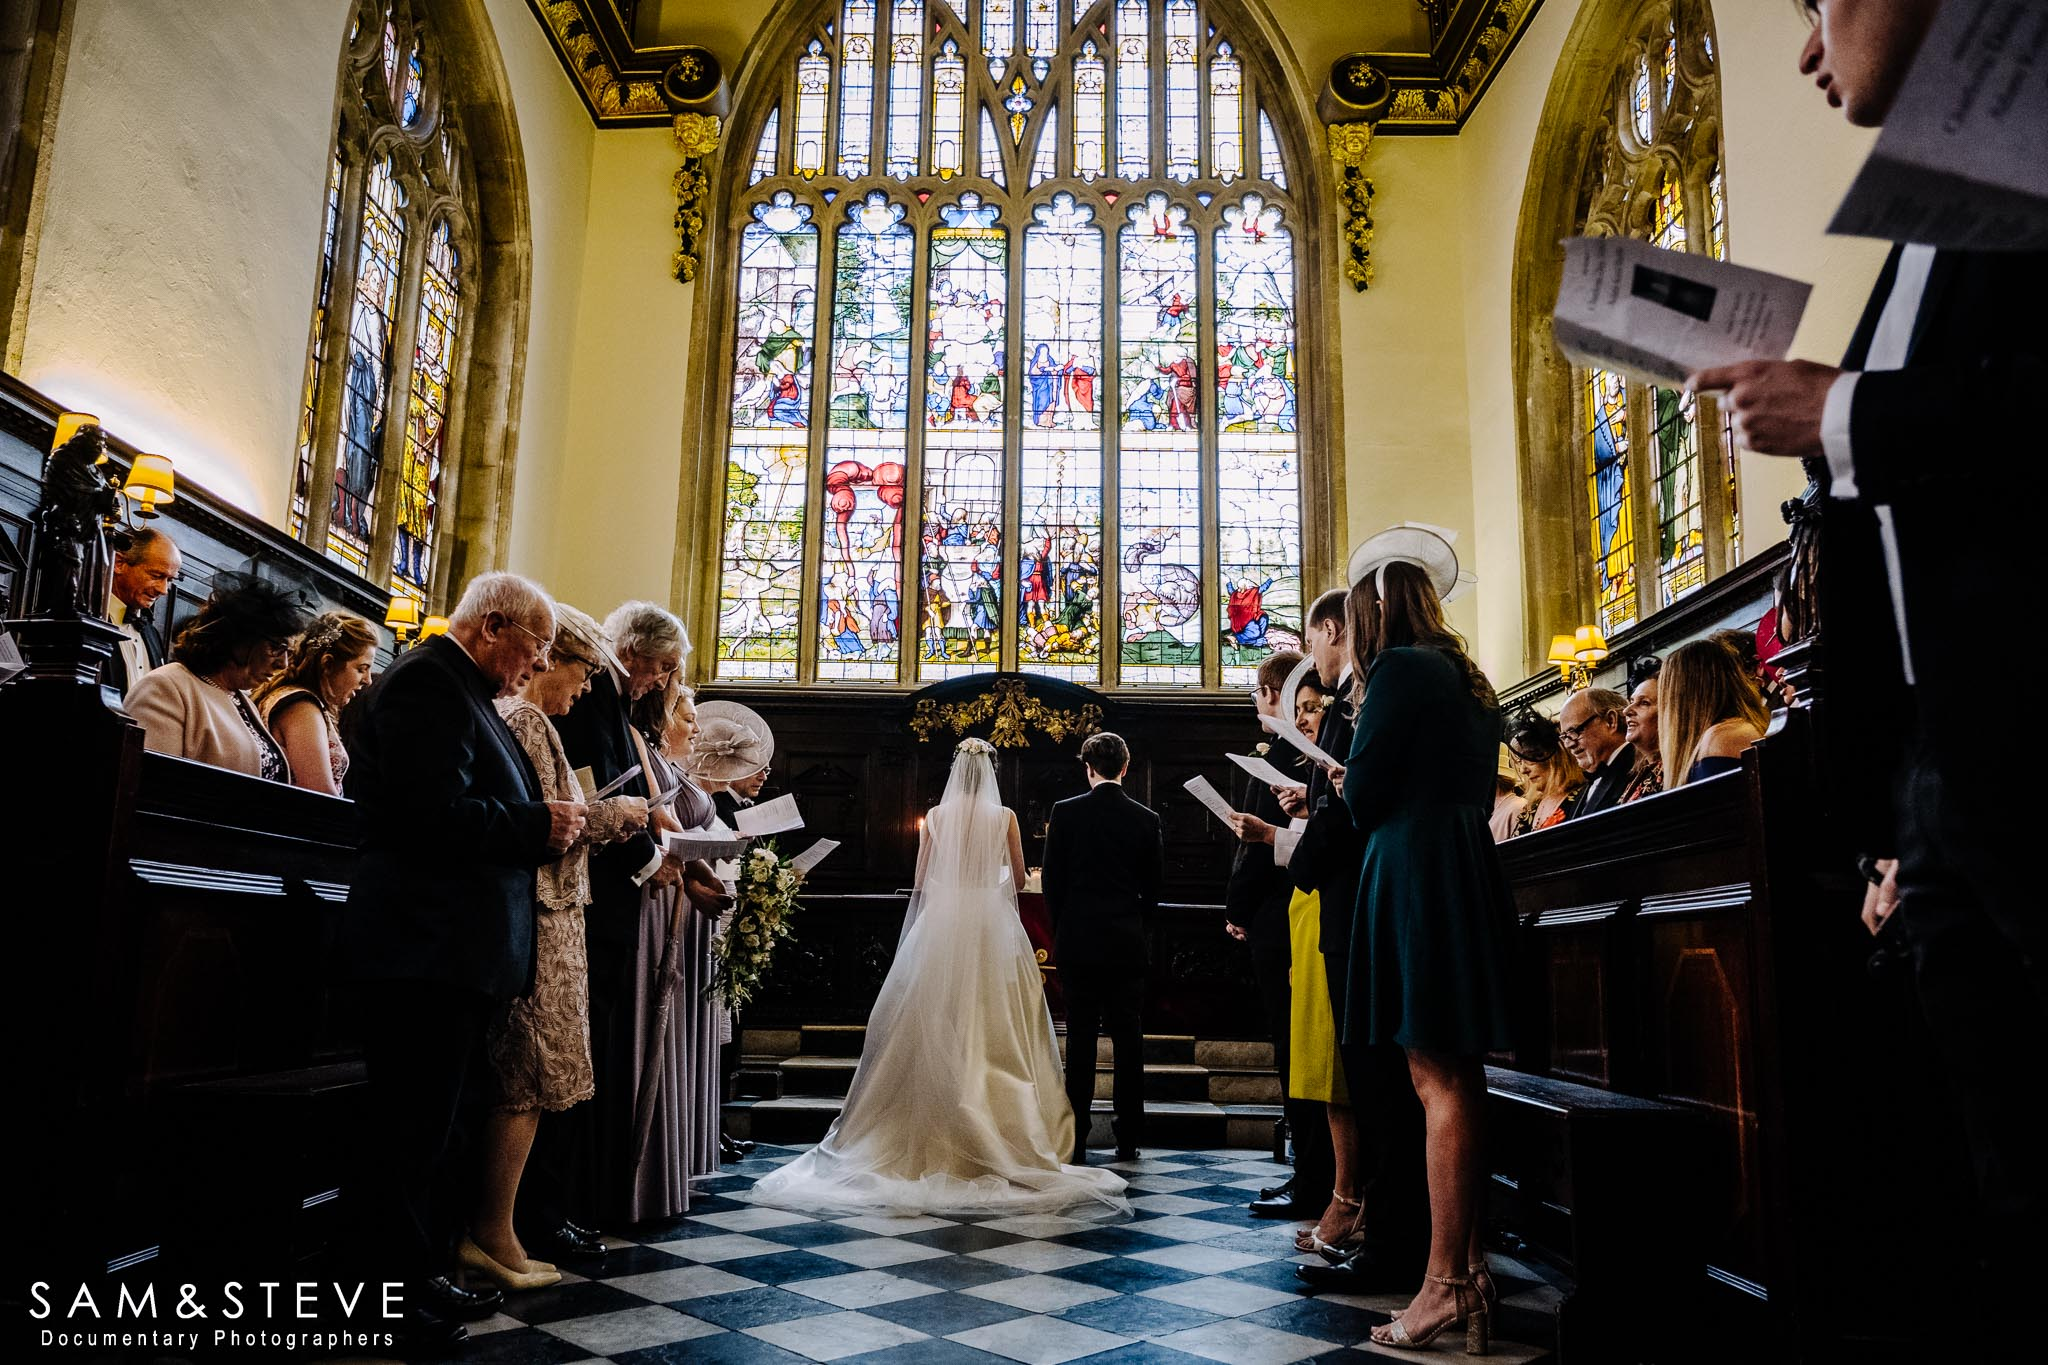 A wedding taking place at Lincoln College Chapel, Oxford.